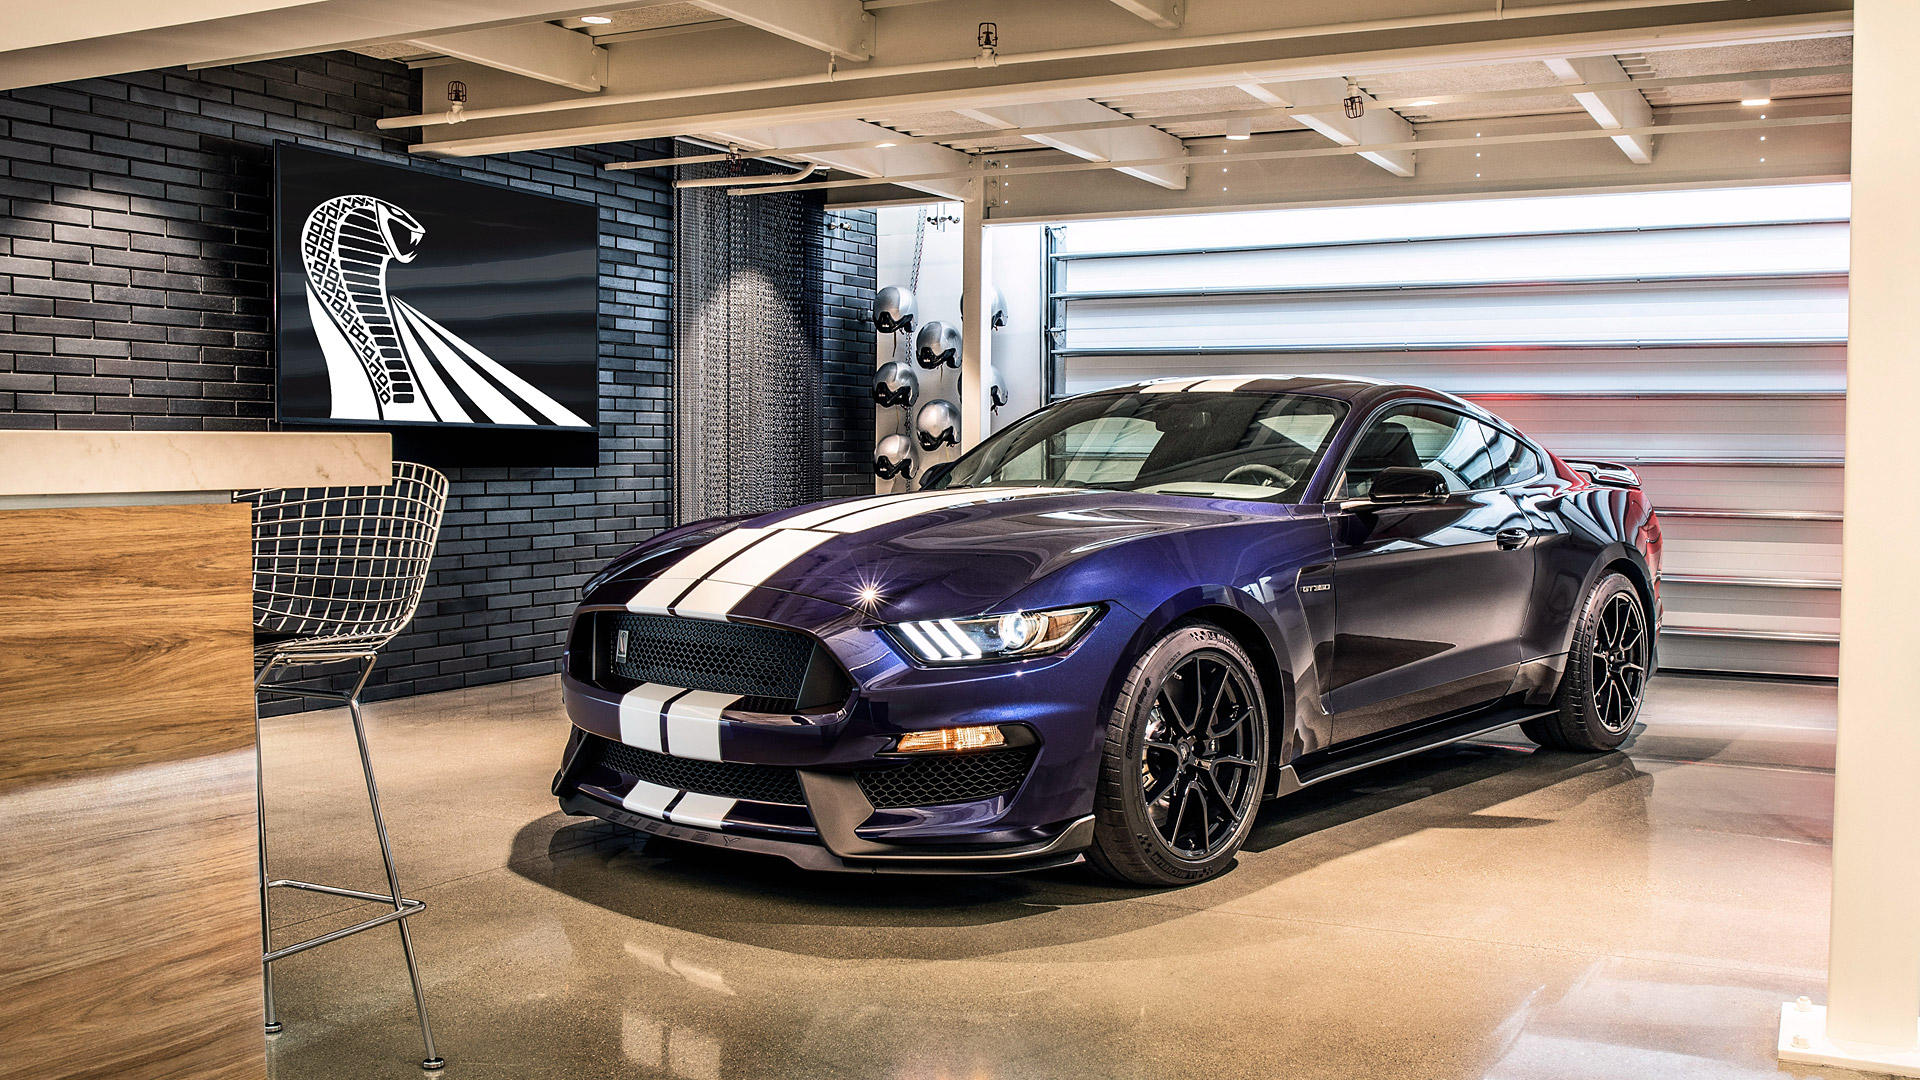 1920x1080 - Shelby Mustang GT 350 Wallpapers 6